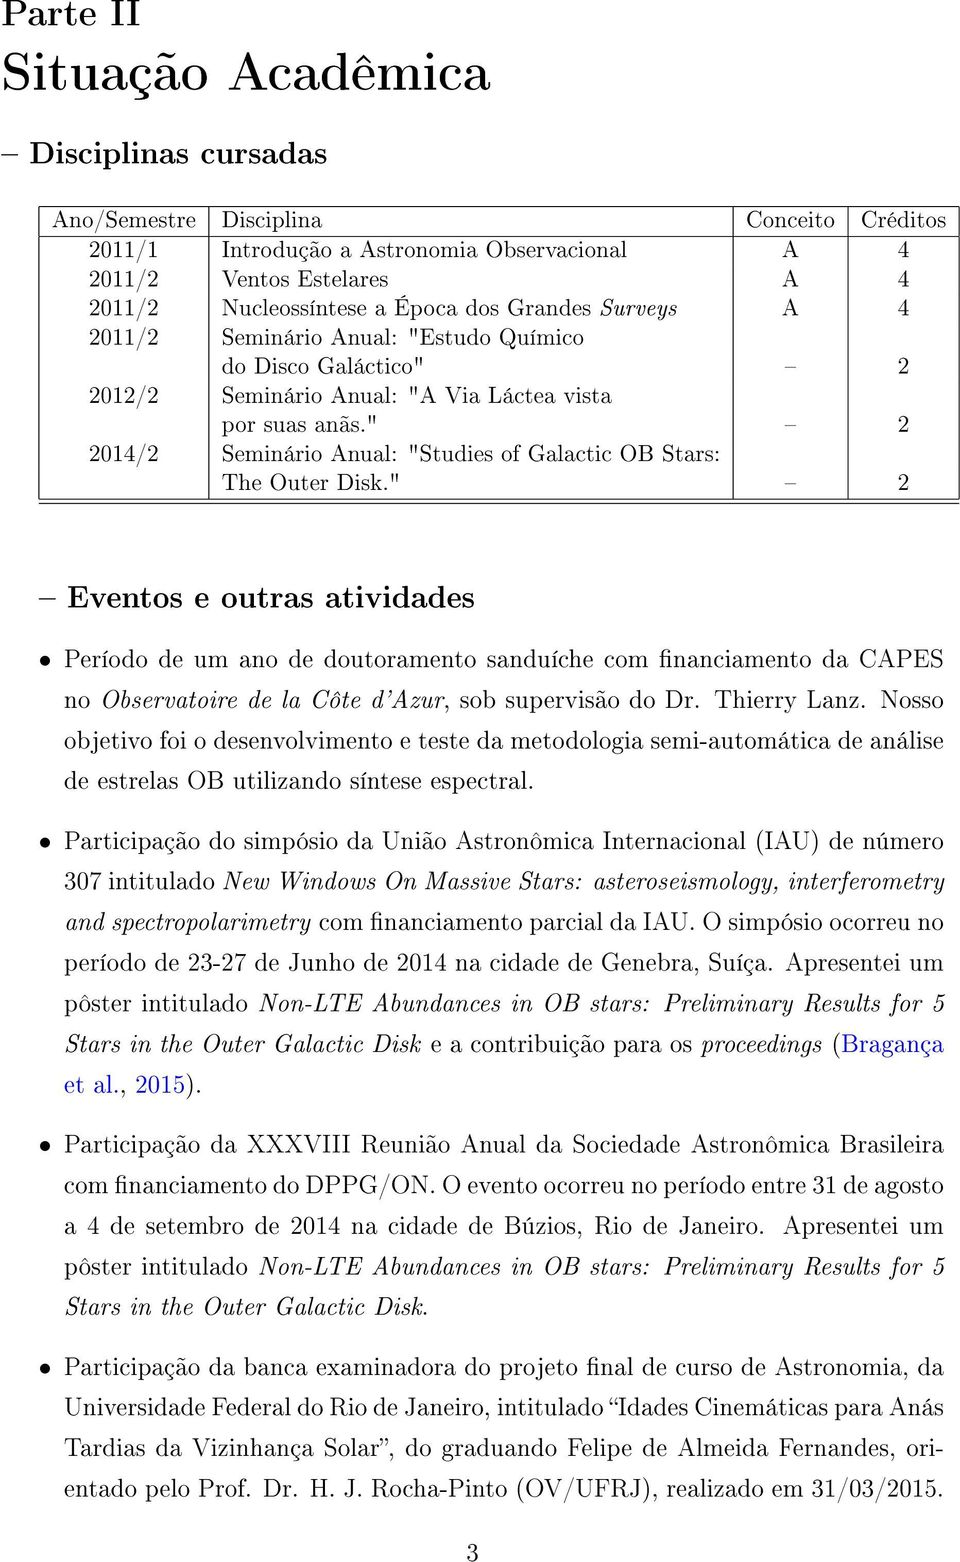 """ 2 2014/2 Seminário Anual: ""Studies of Galactic OB Stars: The Outer Disk."